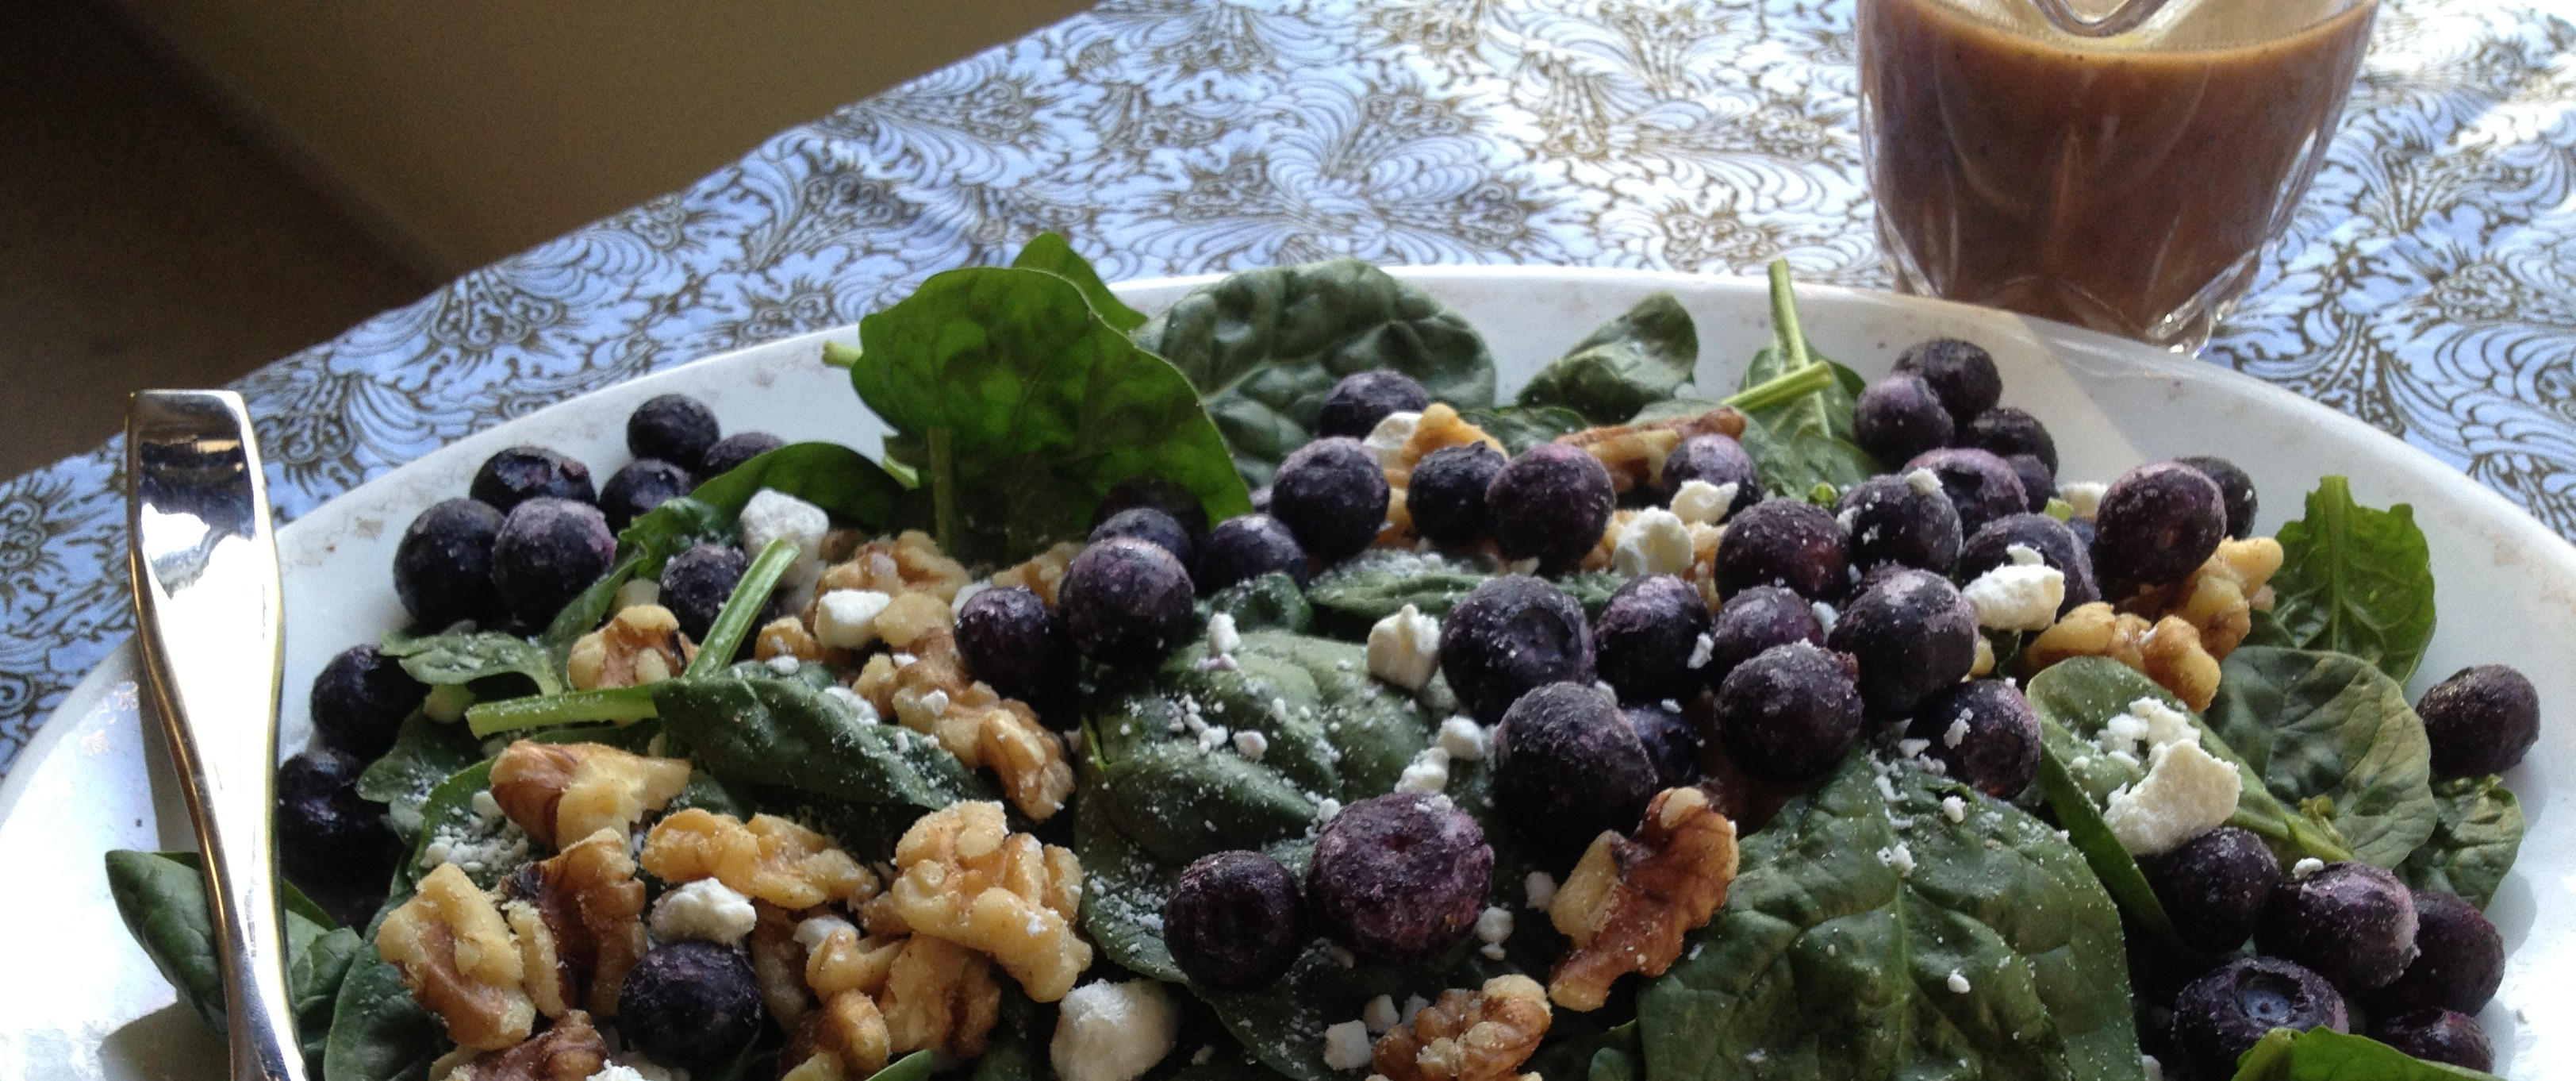 Rosemary Balsamic Dressing with Spinach Salad